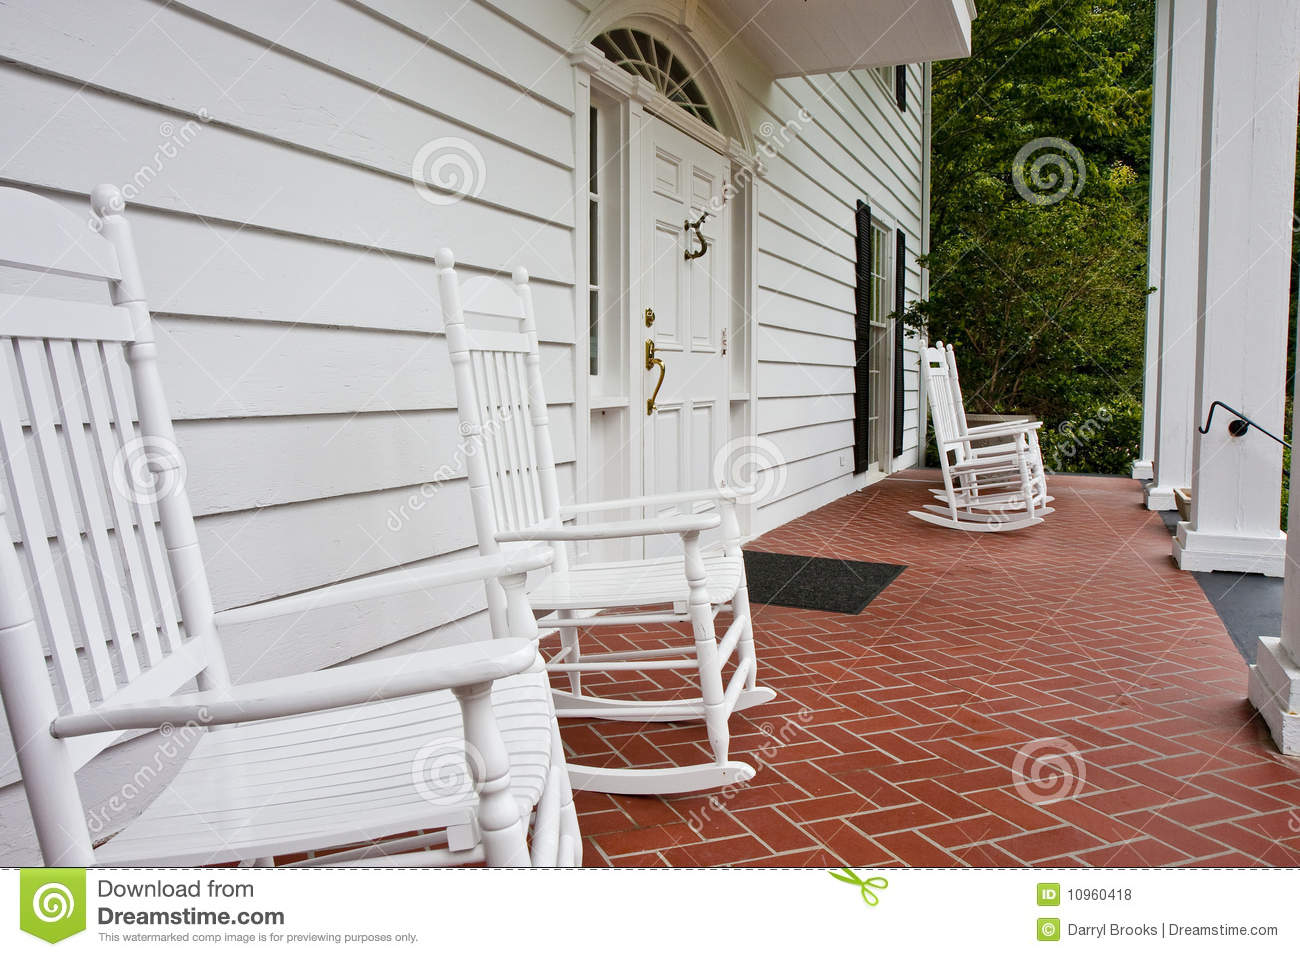 White Rockers On Red Tile Porch Stock Photo Image Of